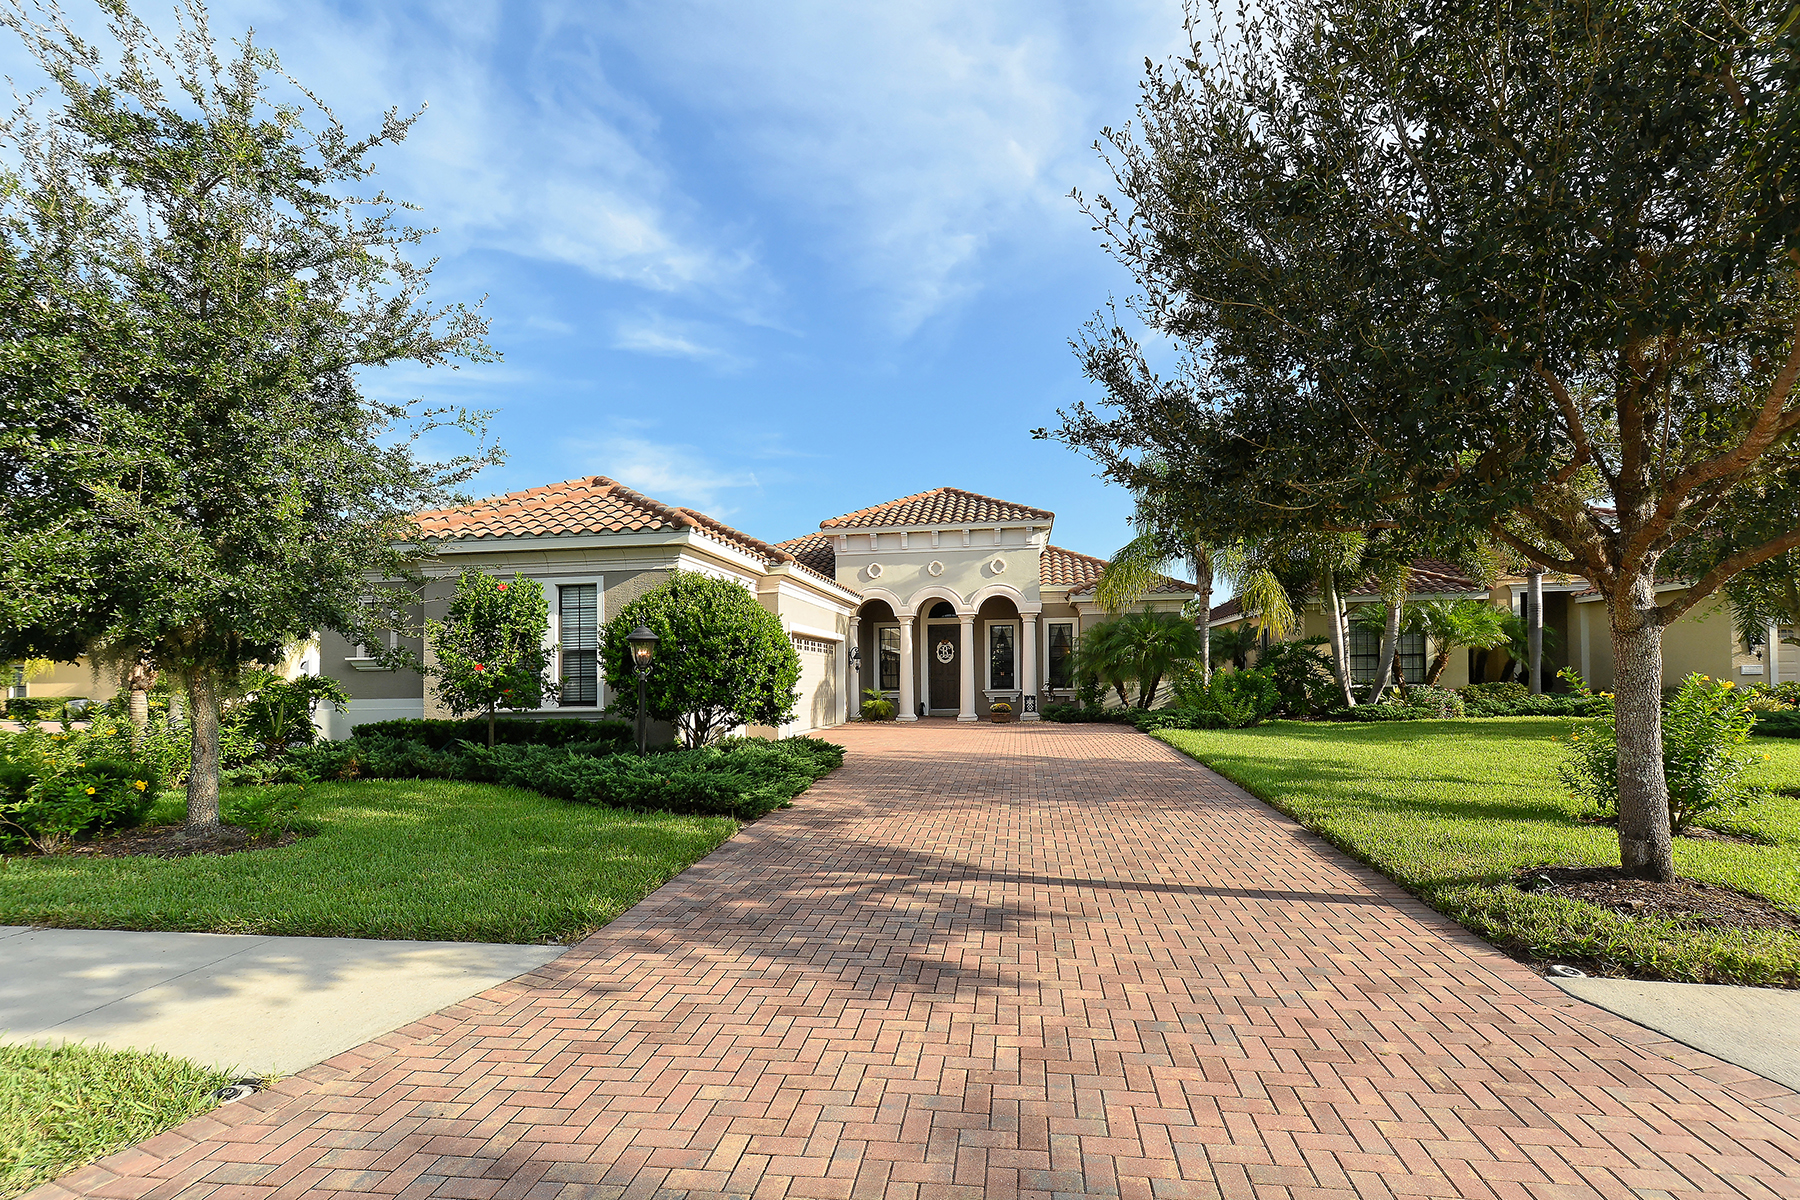 Casa Unifamiliar por un Venta en LAKEWOOD RANCH 12705 Stone Ridge Pl Lakewood Ranch, Florida 34202 Estados Unidos